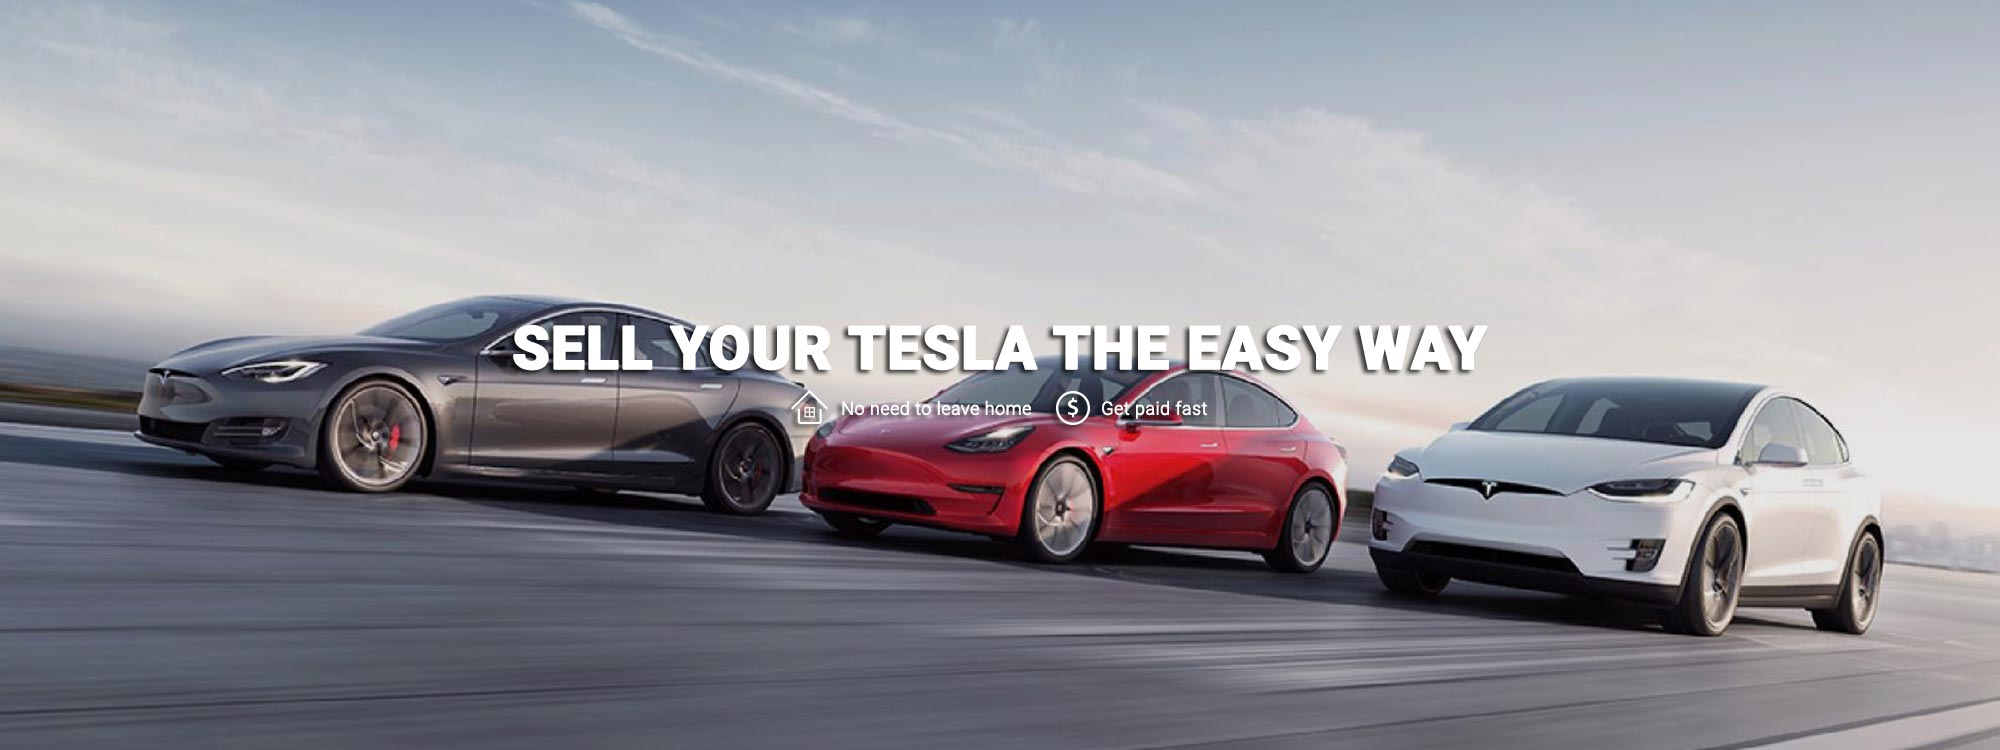 Sell Your Tesla The Easy Way